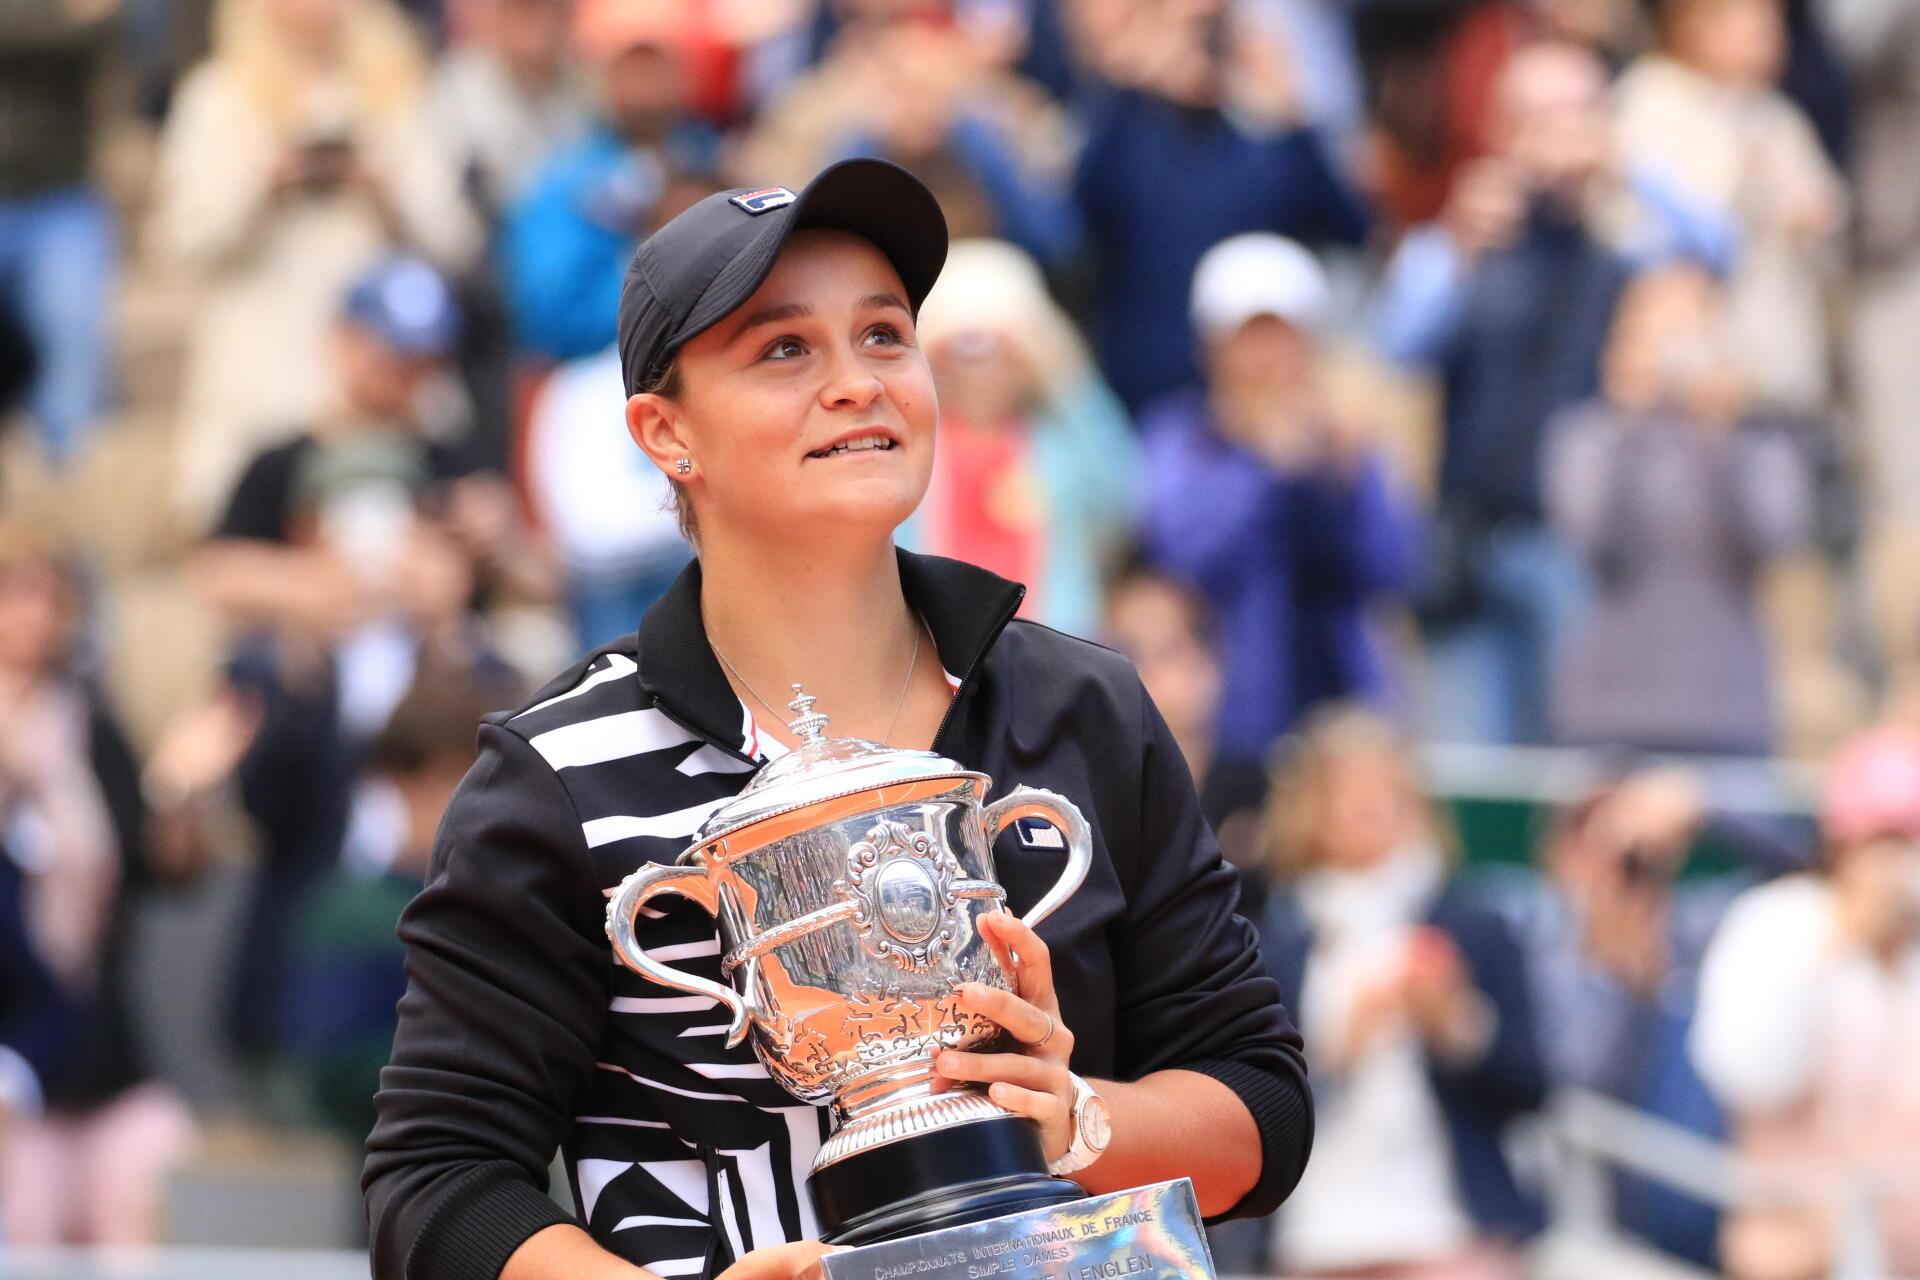 Ashleigh Barty became the first Australian since Margaret Court in 1973 to win the women's singles at the French Open.